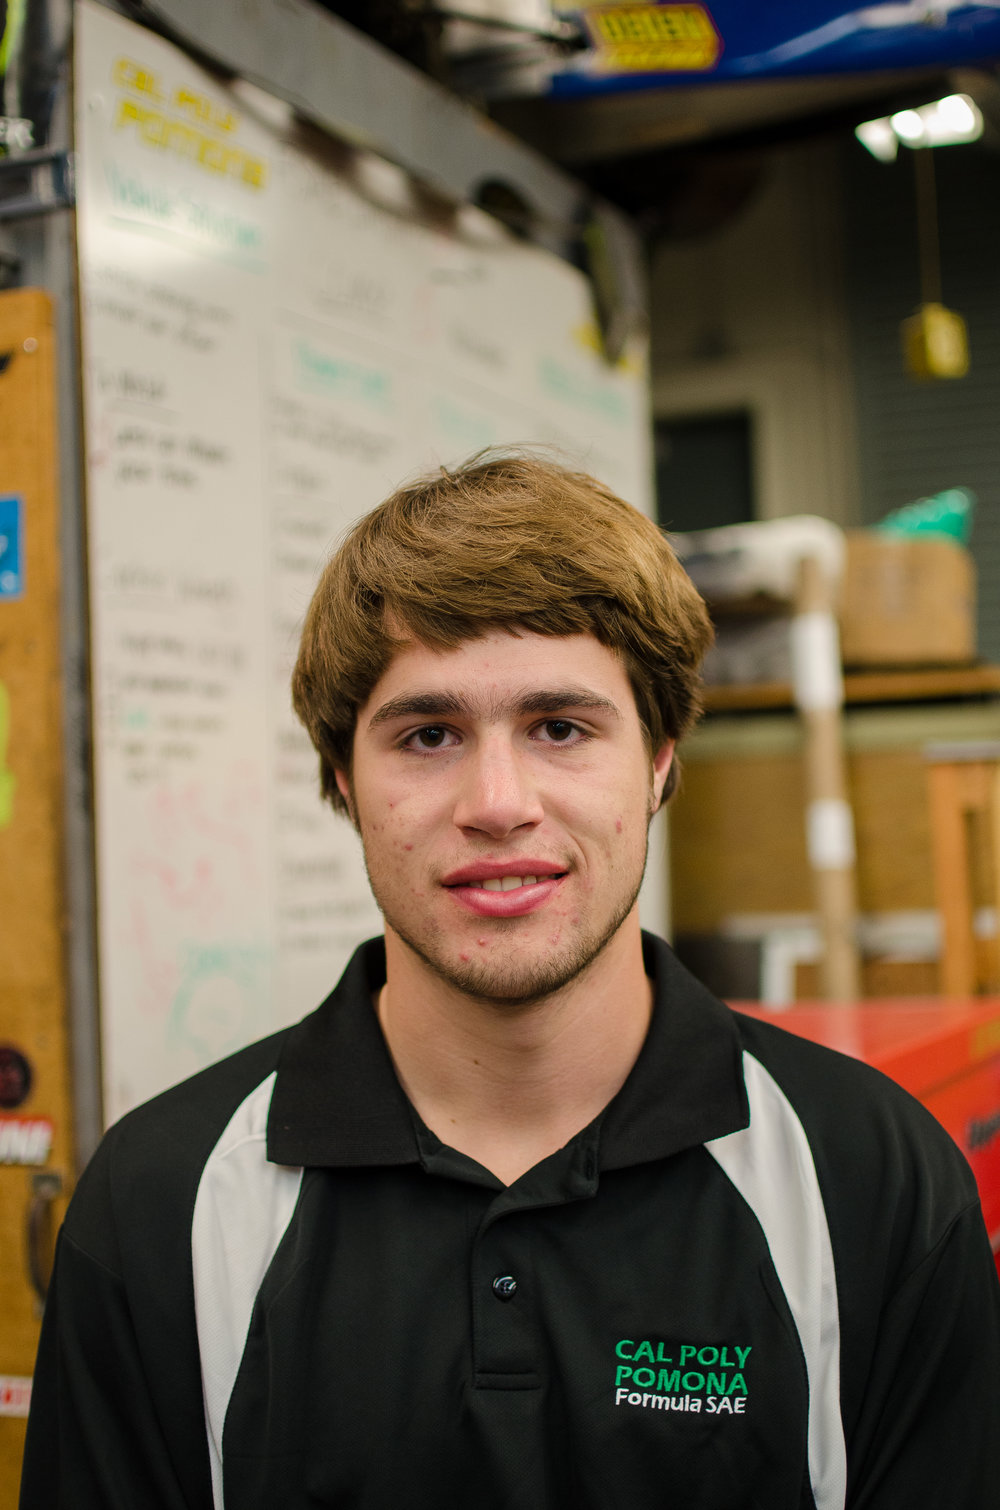 Owen Wilkening - Fuel Captain oawilkening@cpp.edu